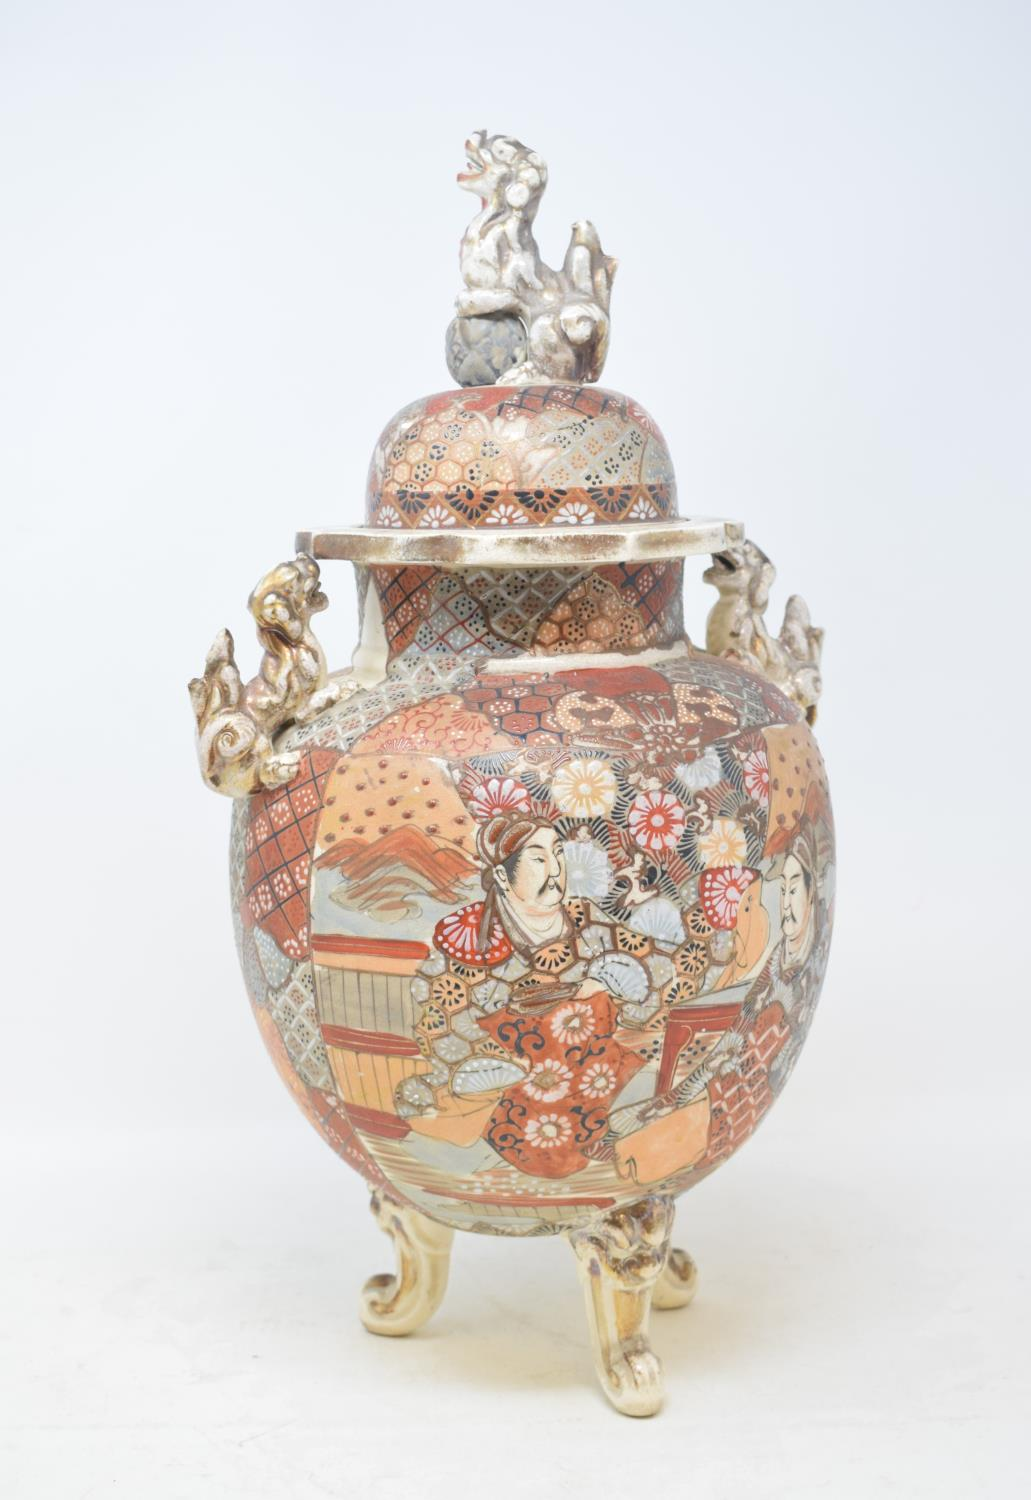 Lot 14 - A Japanese Satsuma vase and cover, decorated figures, with a Dog of Fo finial, 40 cm high, and three